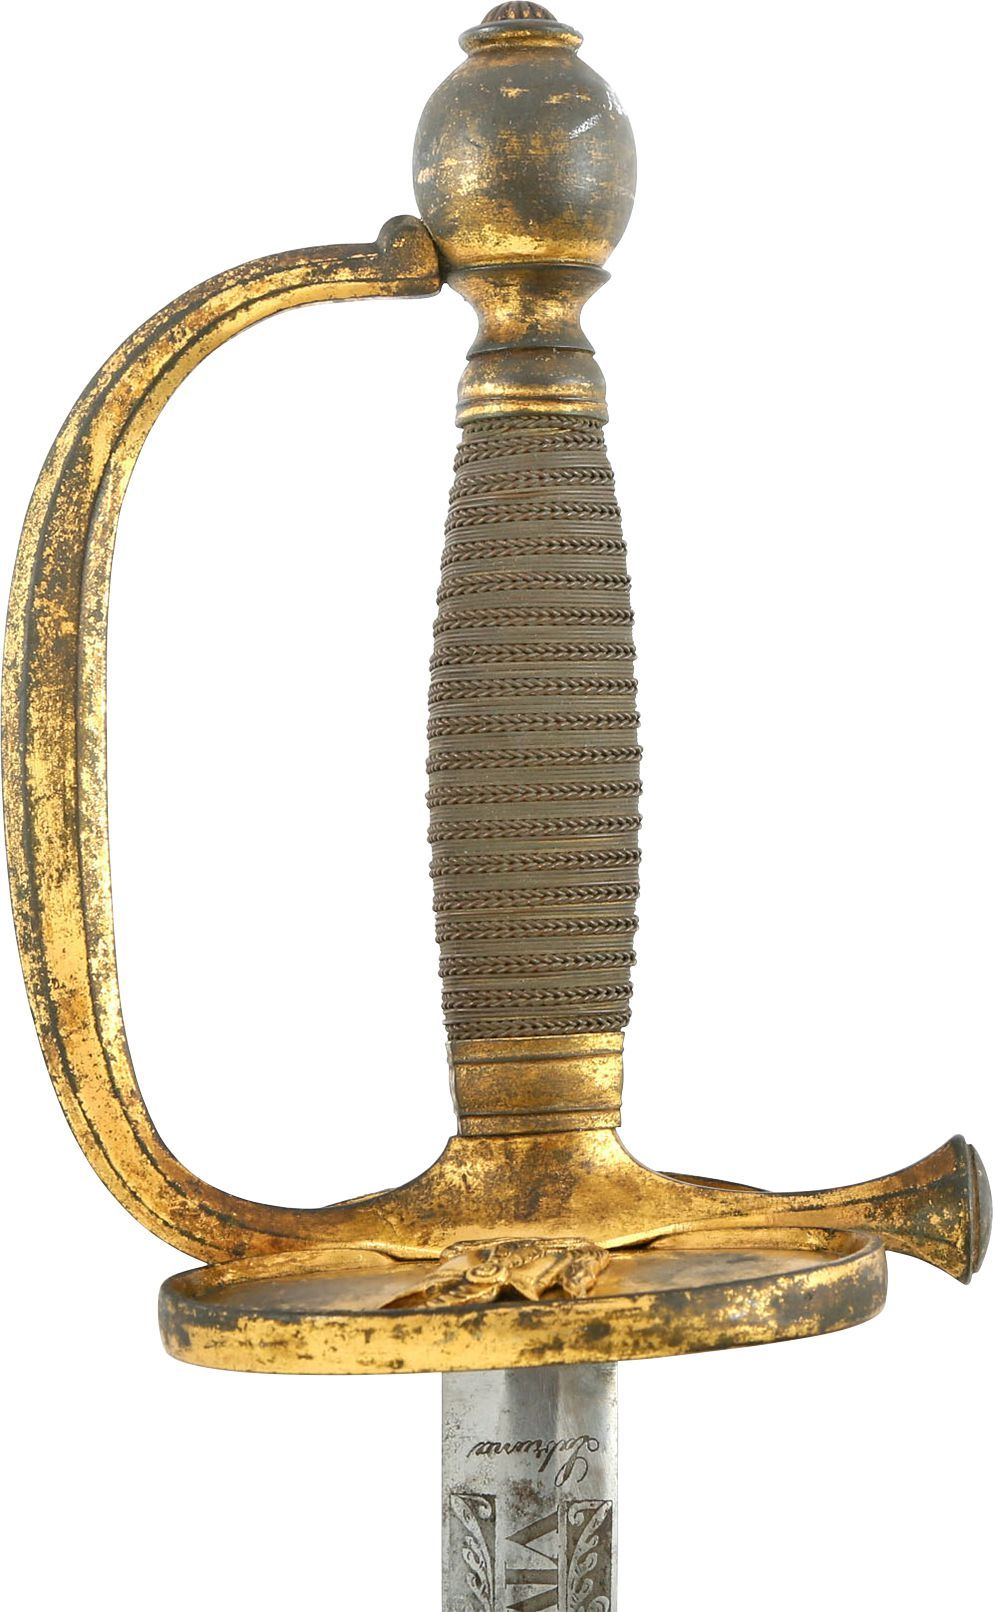 SICILIAN OFFICER'S SWORD